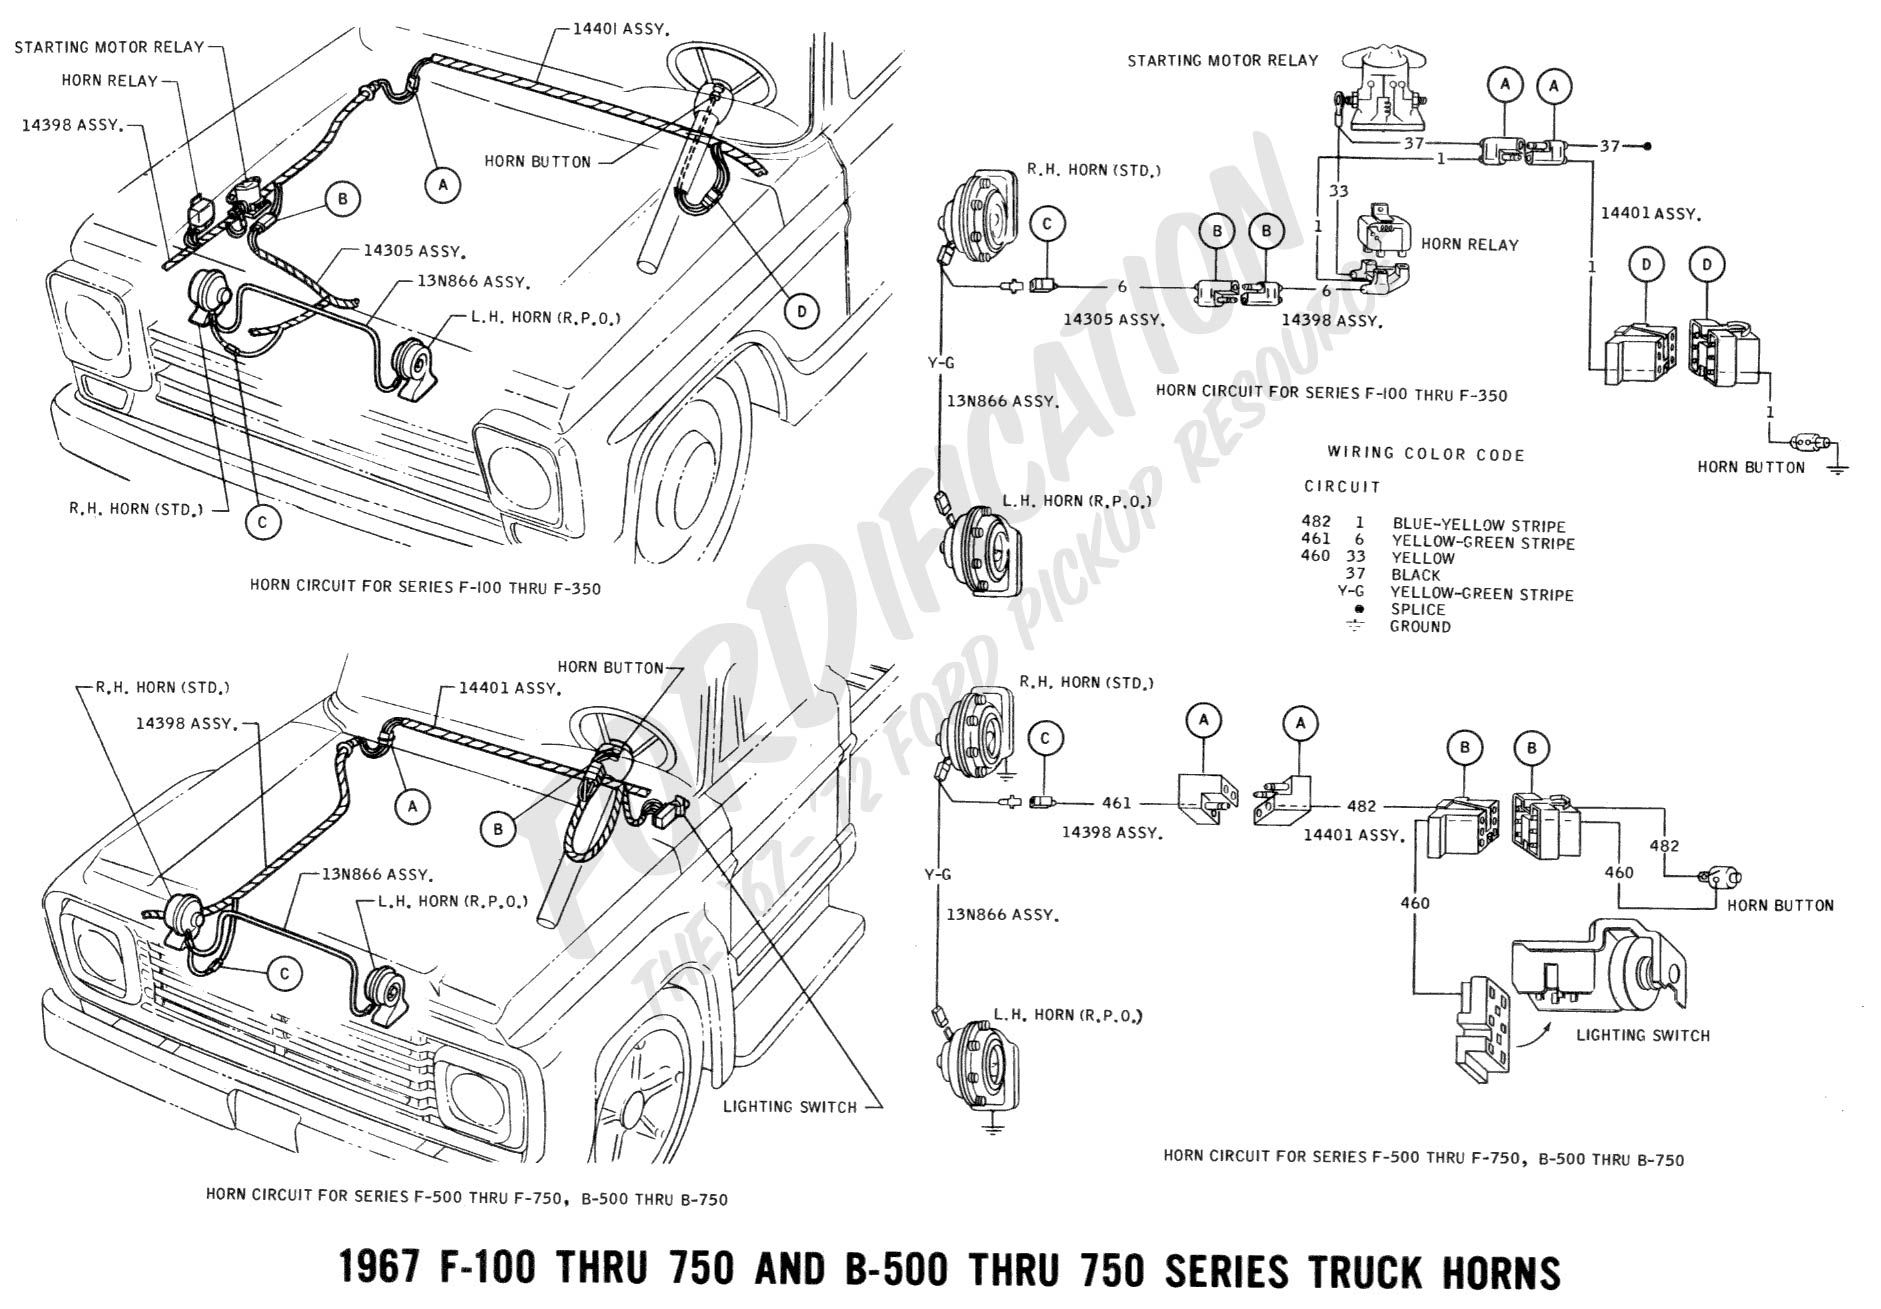 1972 f 100 engine schematics